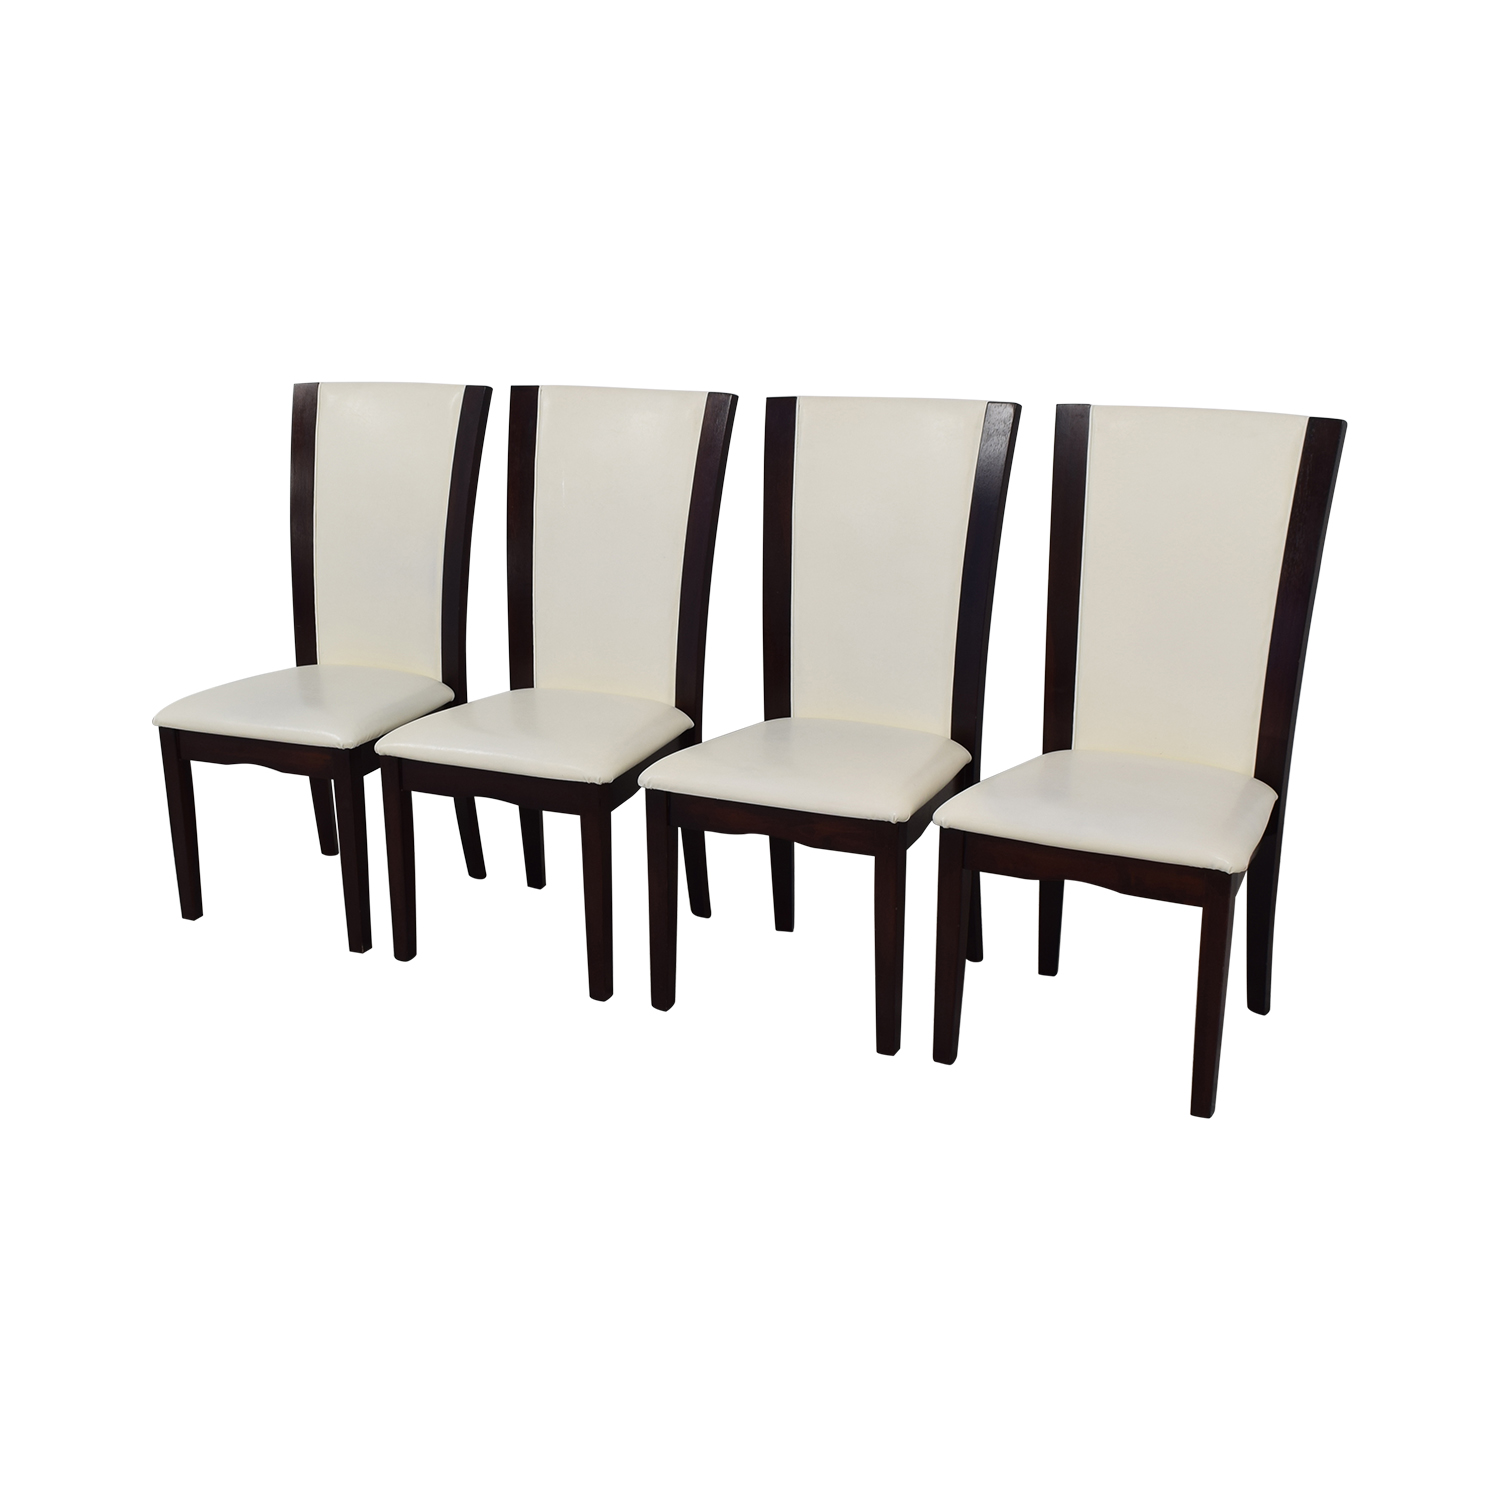 Raymour & Flanigan Dining Chairs / Chairs